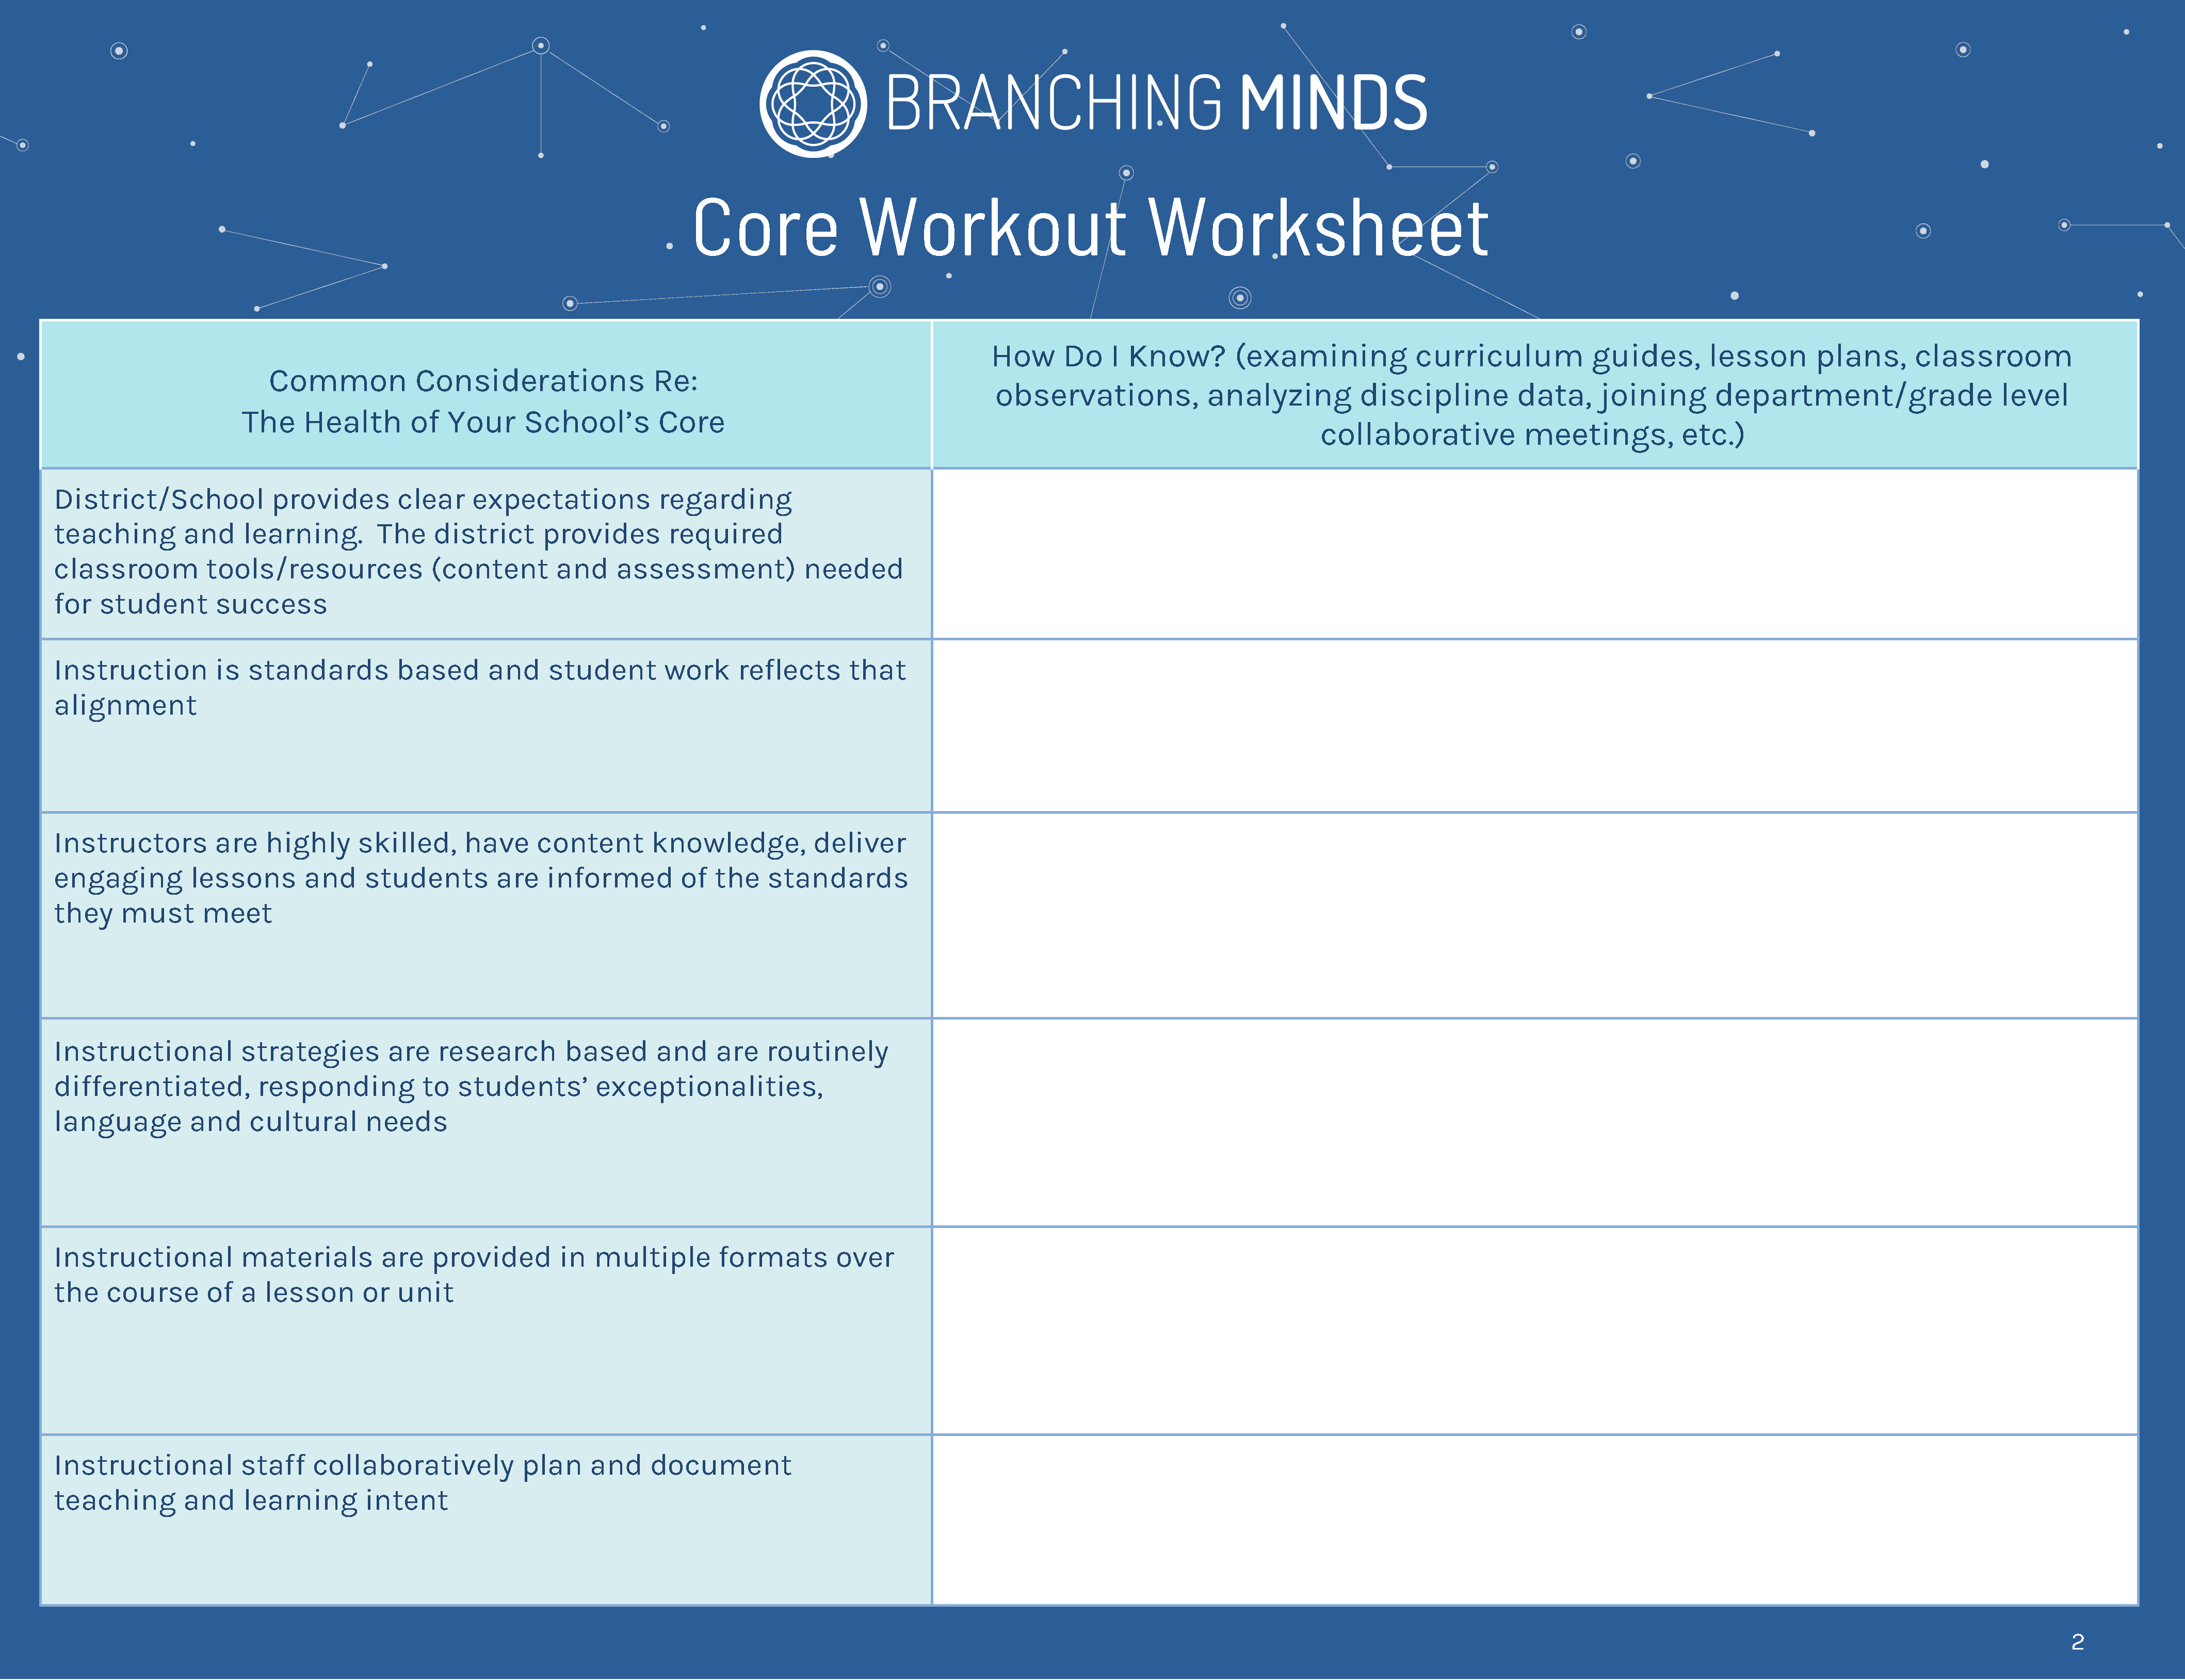 Core Workout Worksheet for MTSS